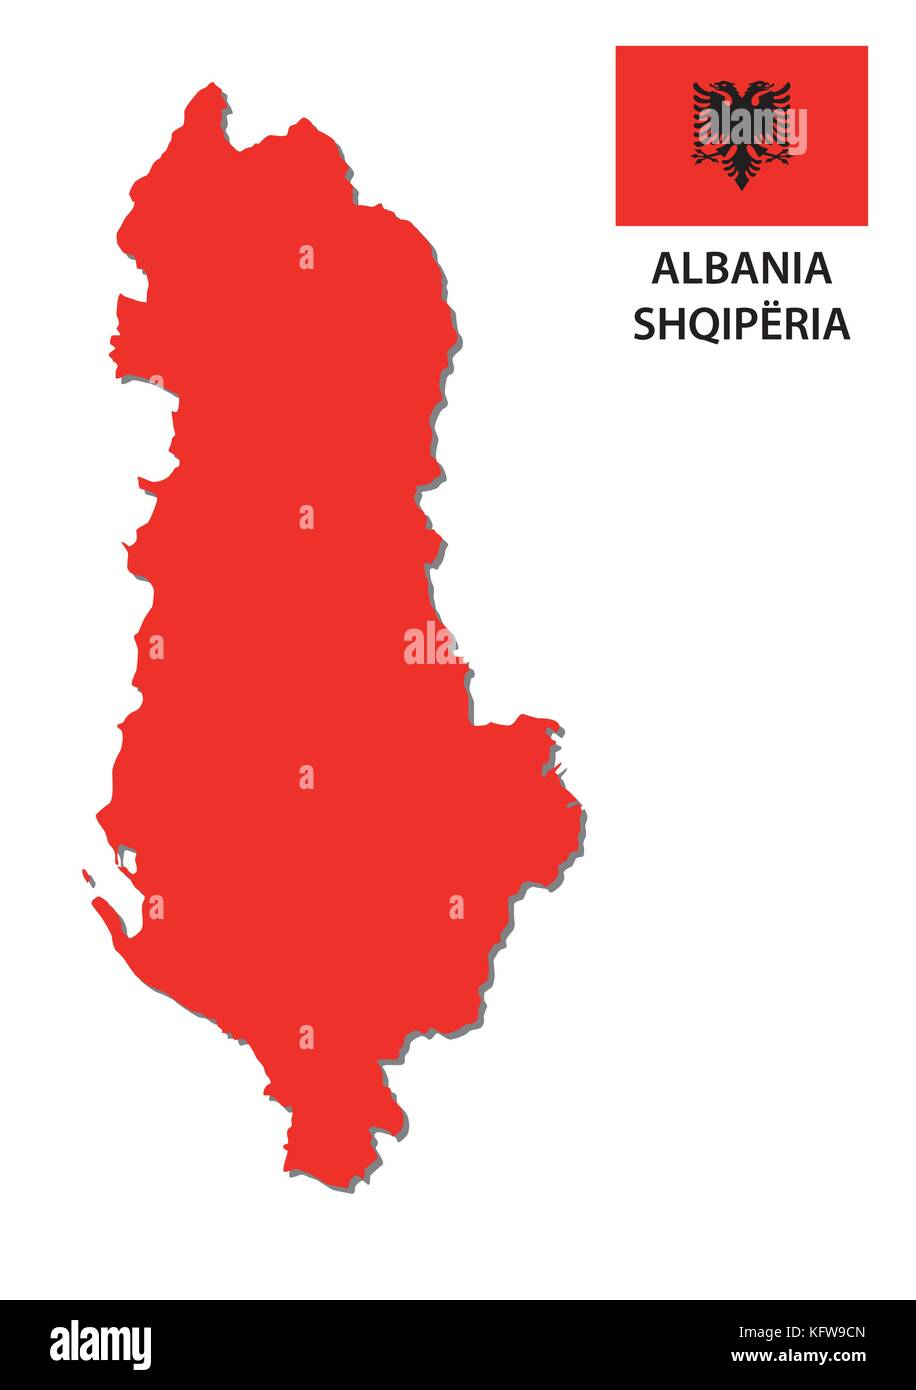 Simple world map outline stock vector images alamy red albania vector map with flag stock vector gumiabroncs Image collections